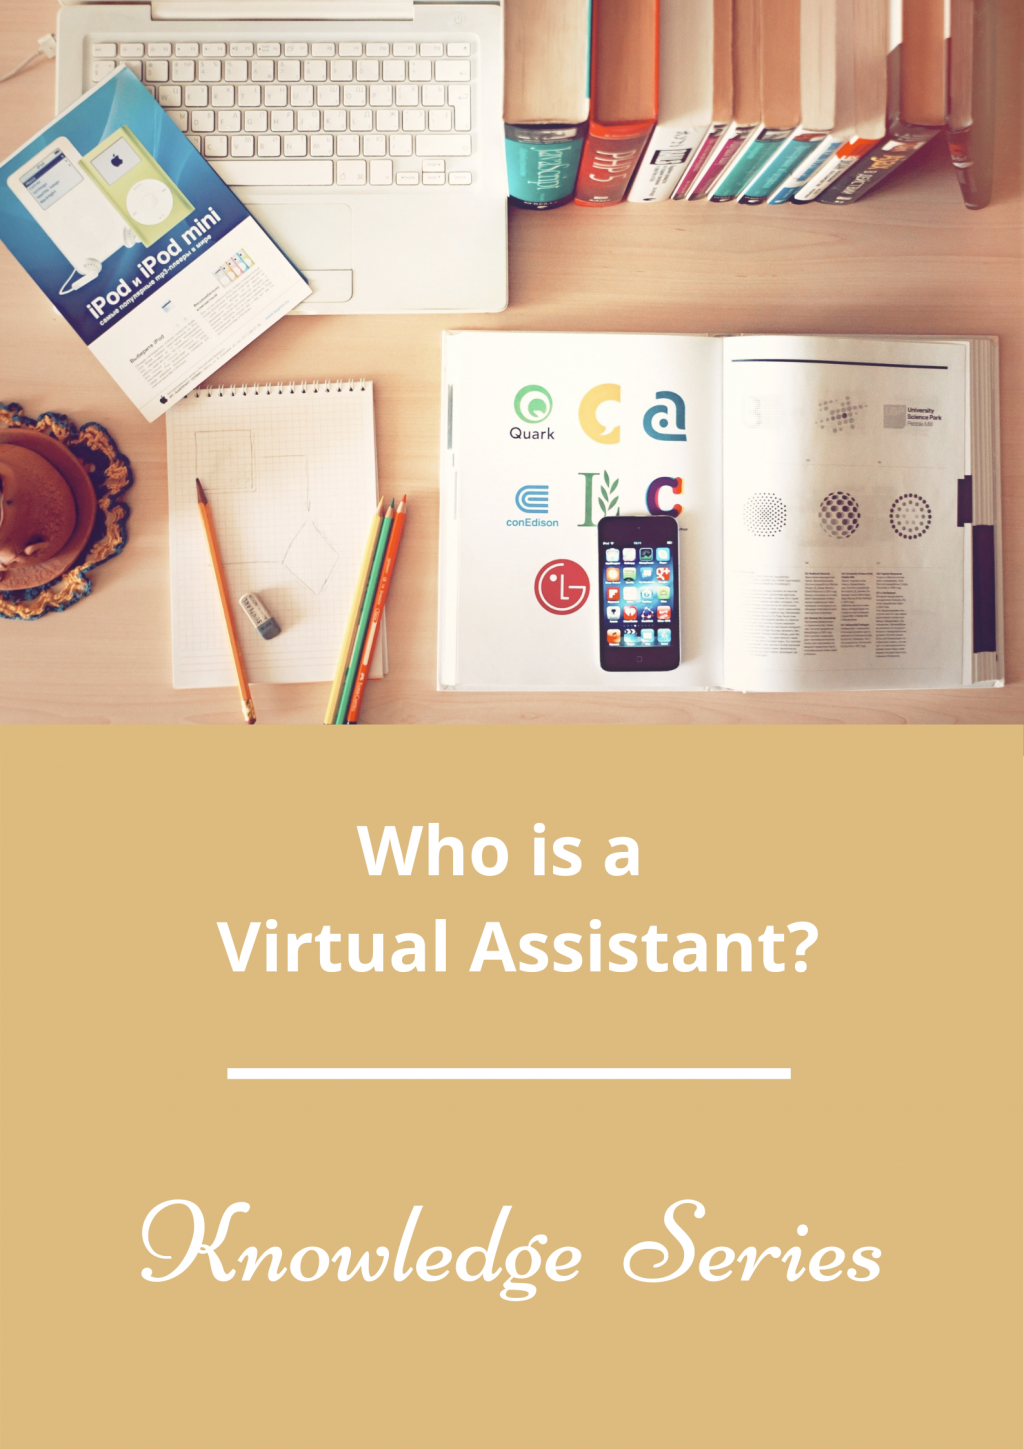 Who is a Virtual Assistant